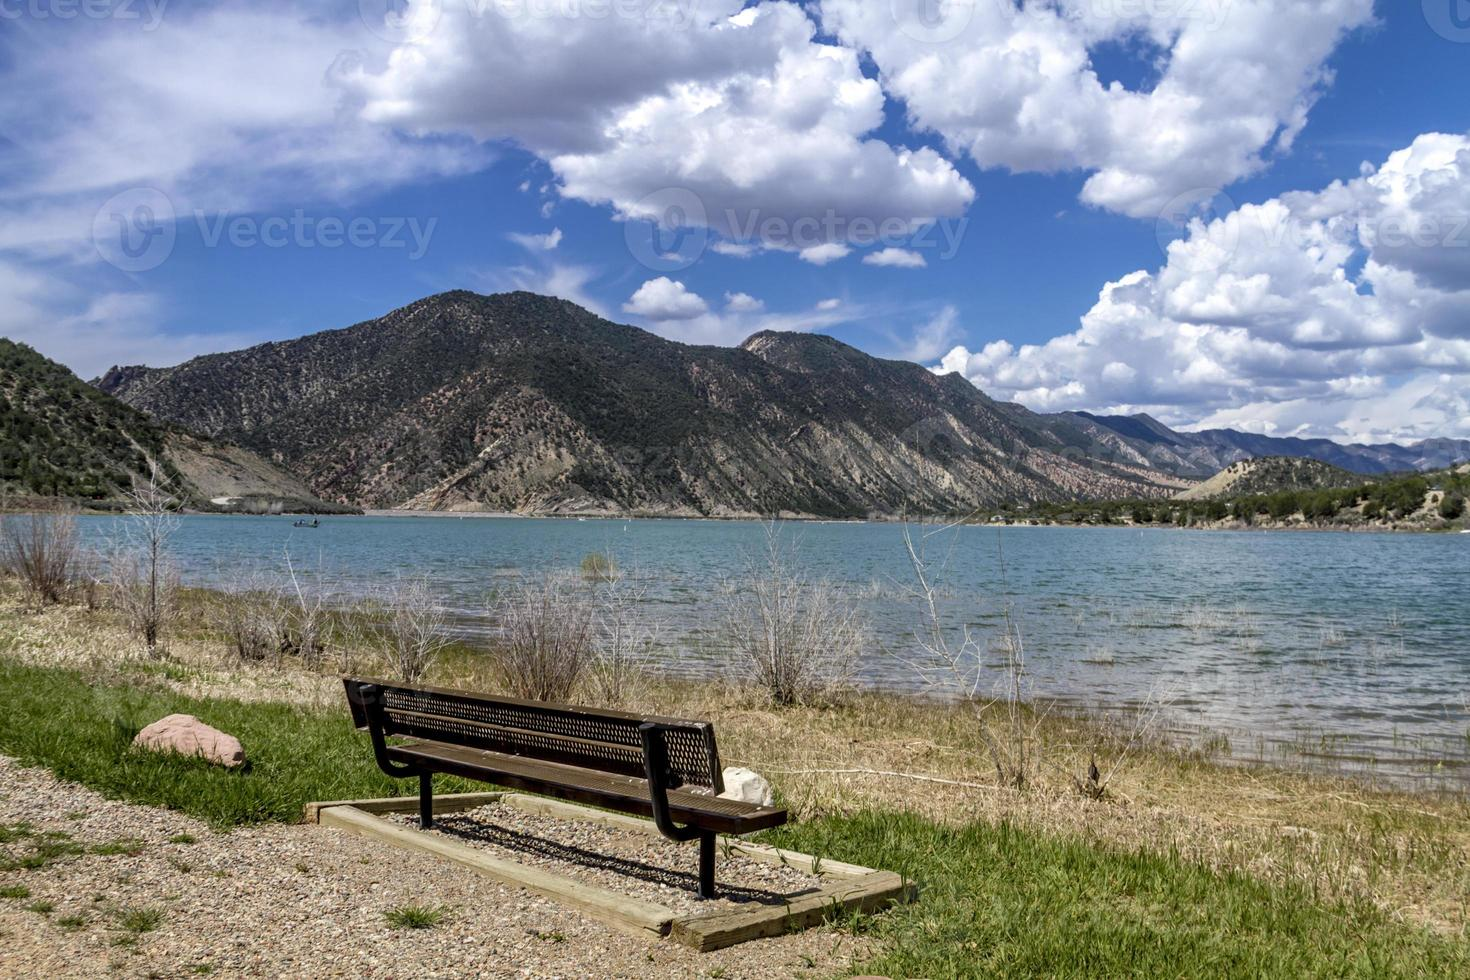 Picnic Area and Bench on Lake photo